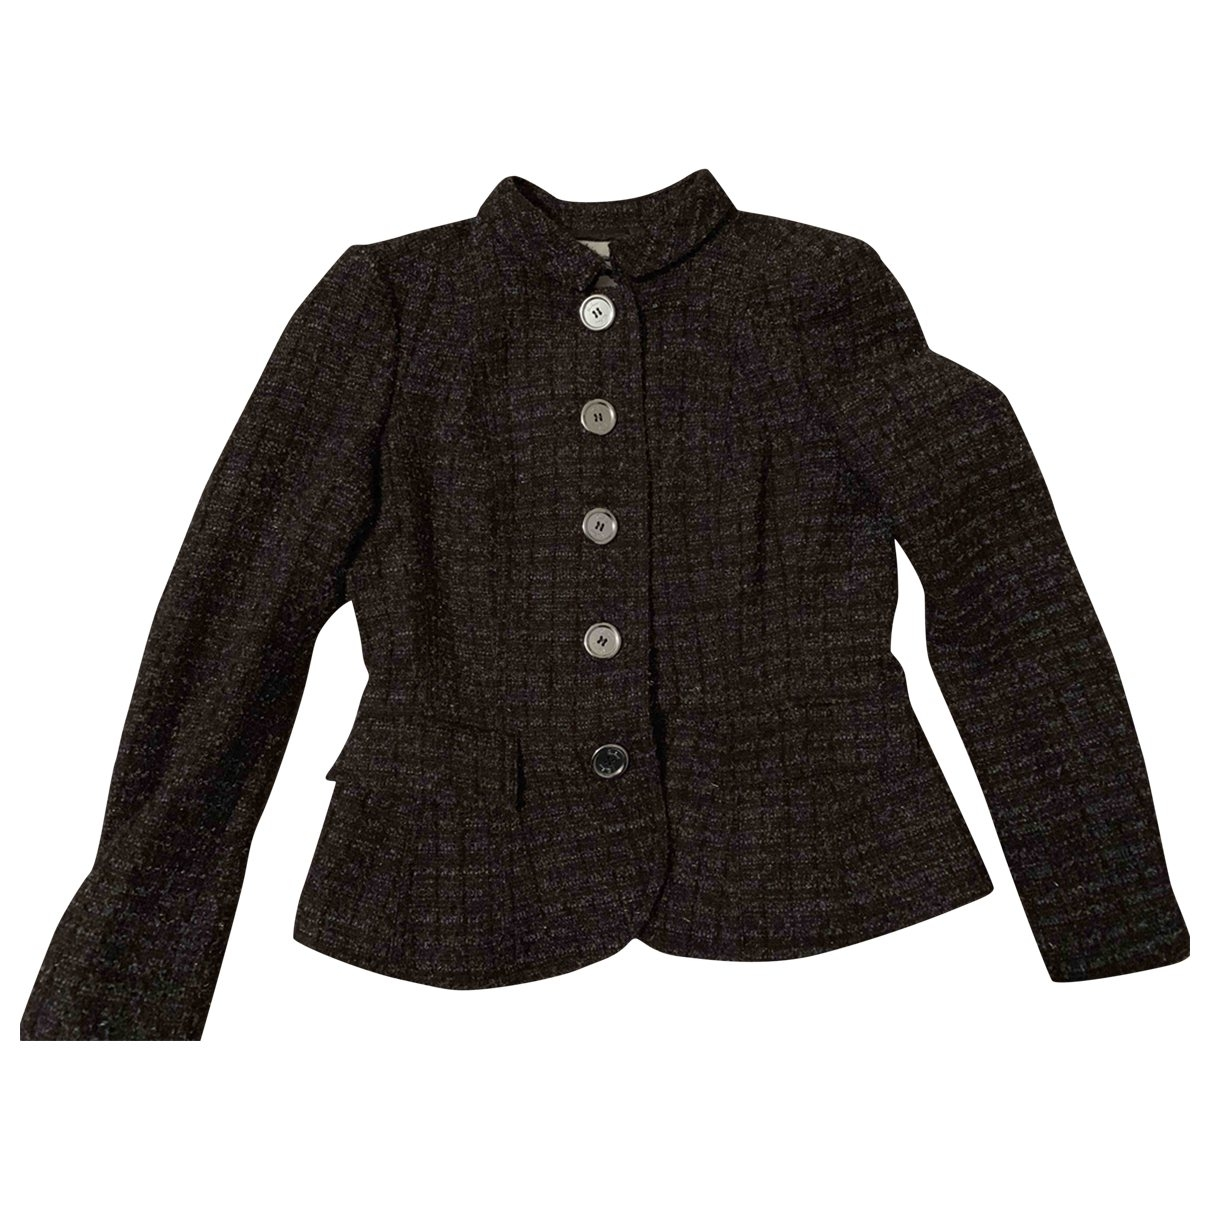 Burberry \N Brown Cotton jacket for Women 8 UK